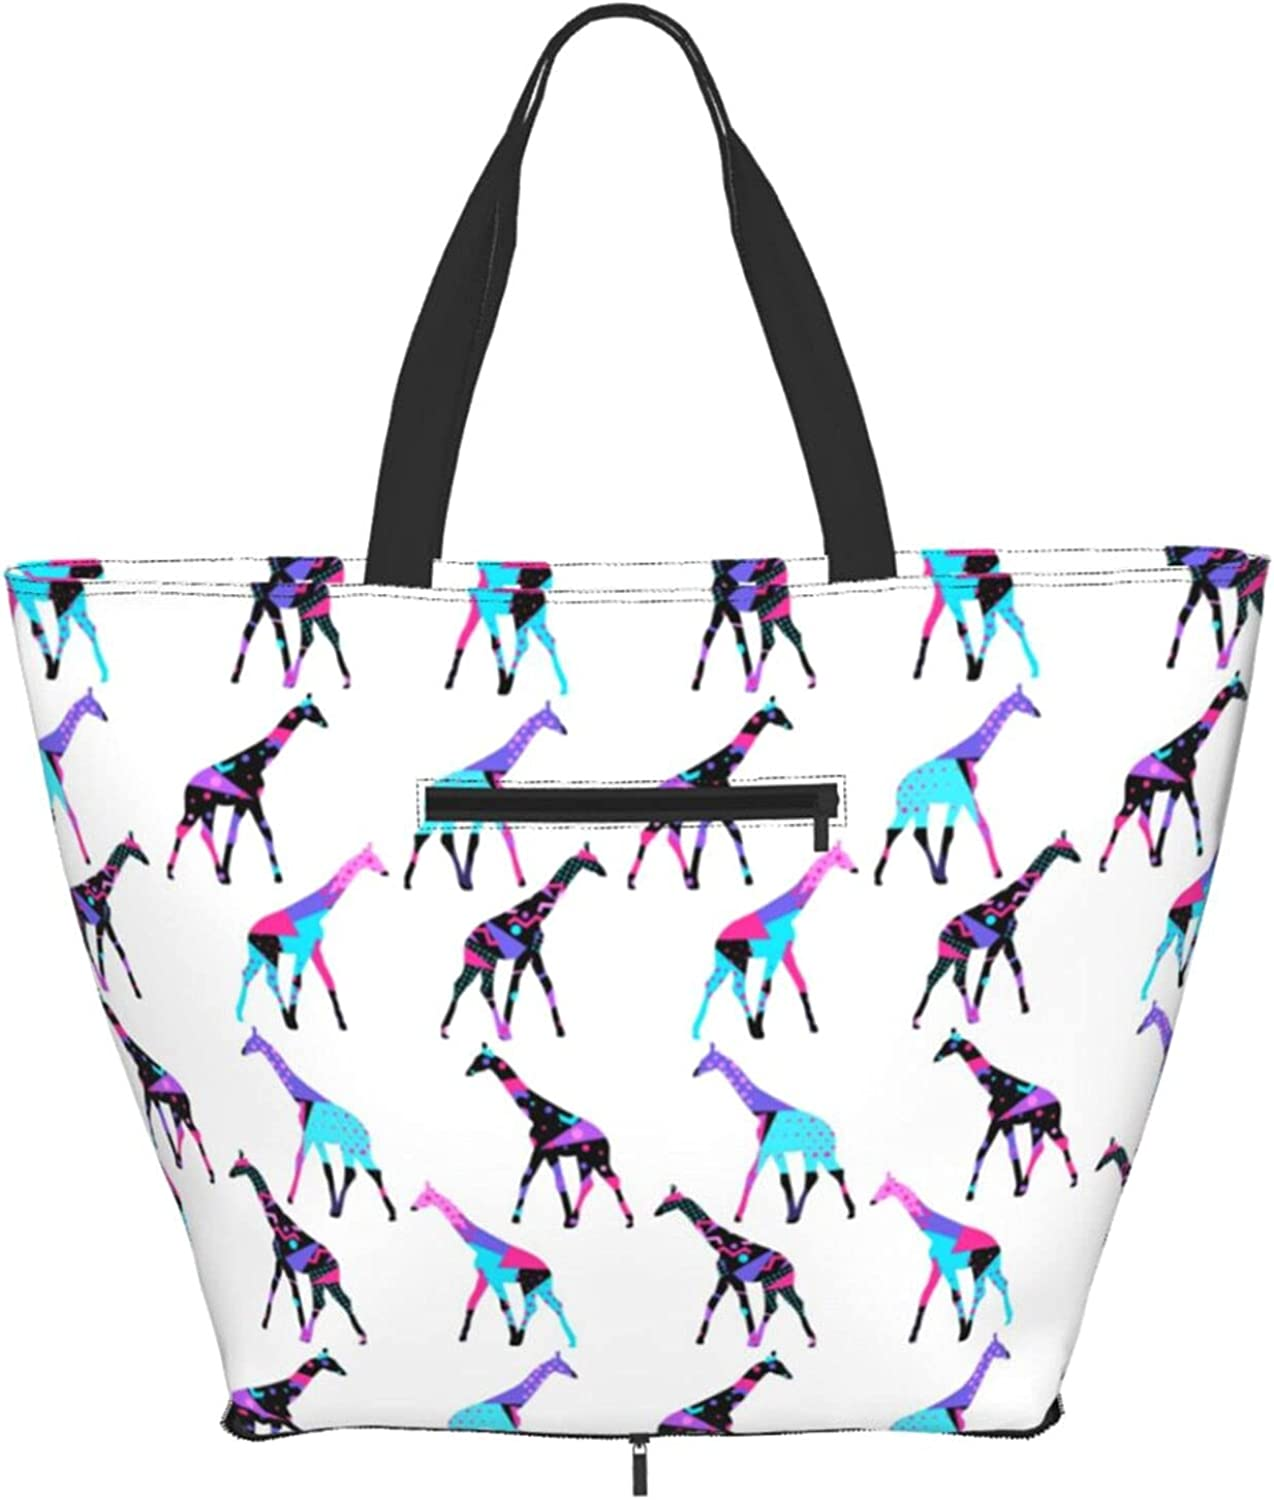 Shoulder Tote Bag Colorful Giraffe Purse Pattern H Geometric Top SEAL limited product Seasonal Wrap Introduction